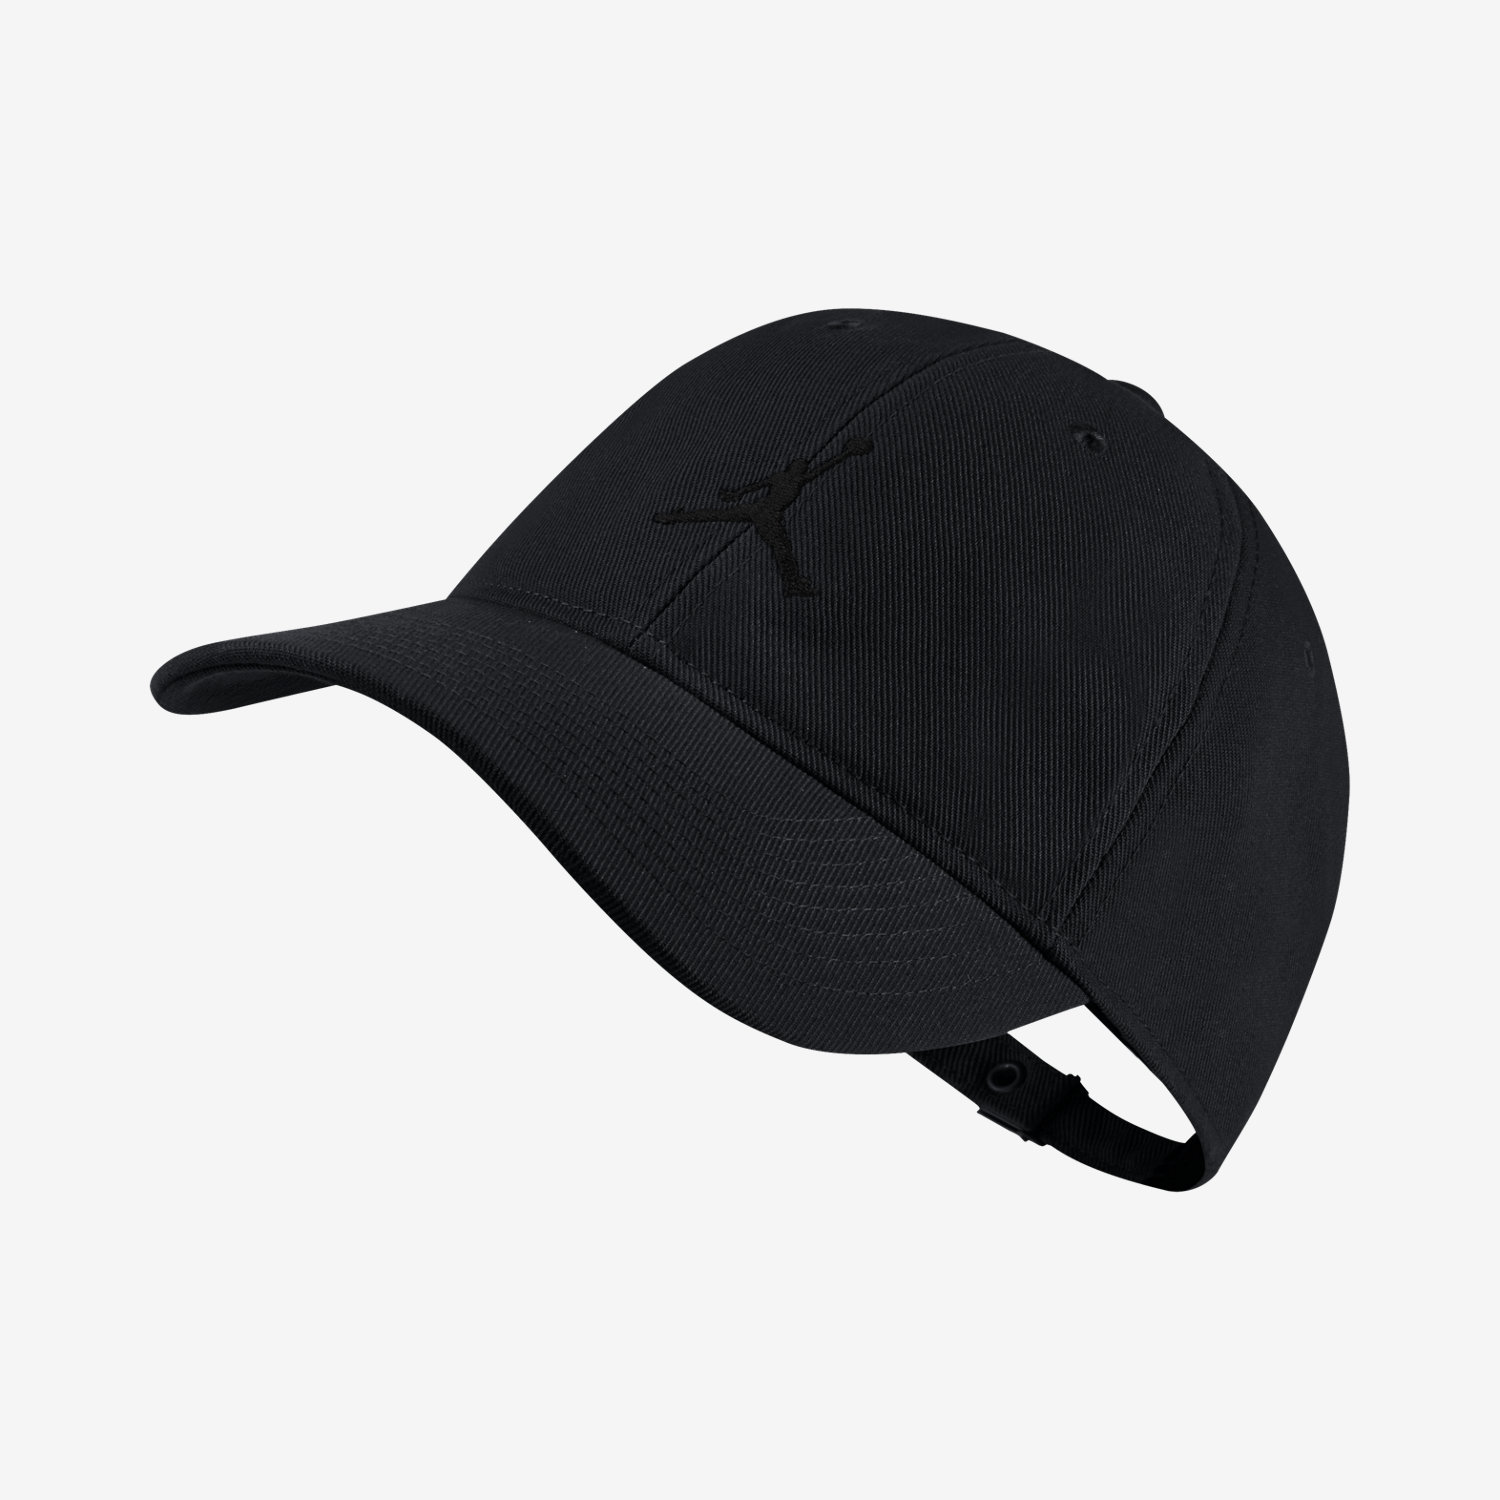 ... greece bucket hat jordan jumpman h86 adjustable hat. nike 7fff7 e349b dae2944997e4